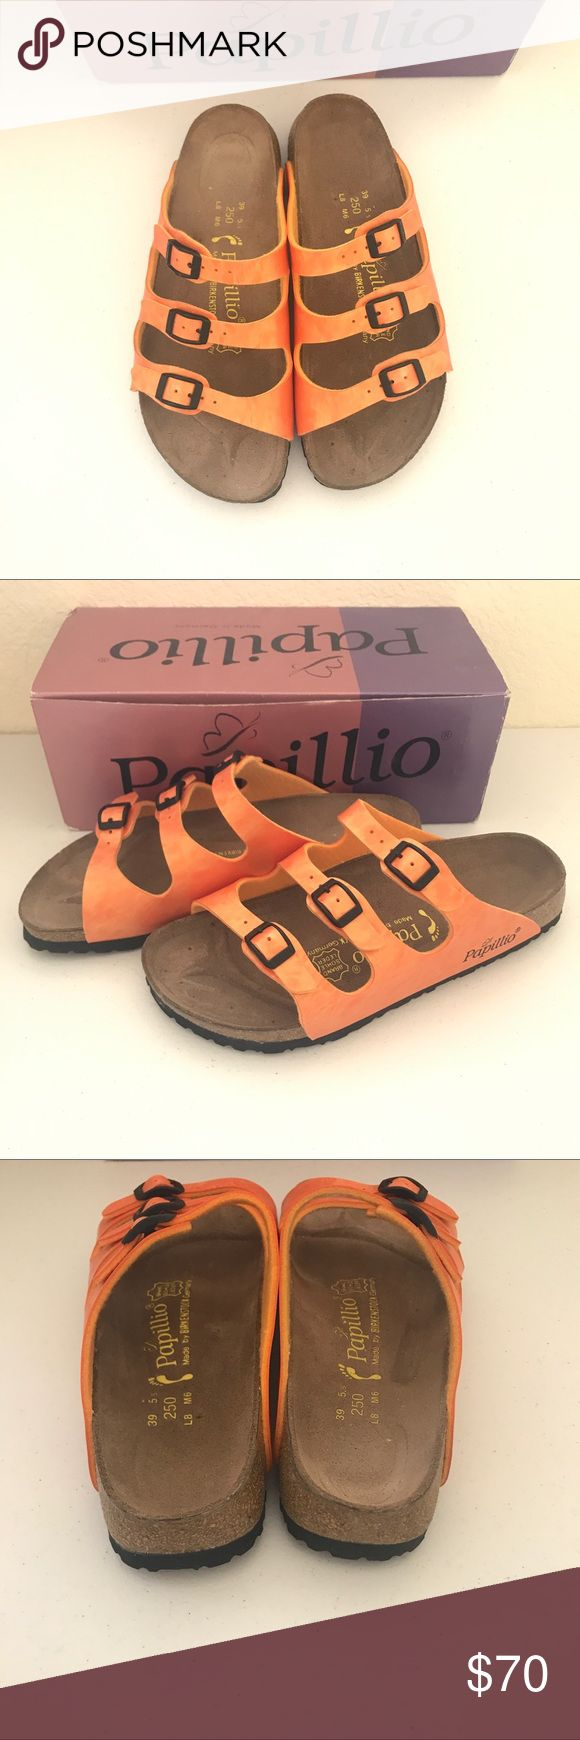 Birkenstock Papillio Florida New in box Papillio by Birkenstocks. Style Florida. leather footbedliner, natural cork footbed, birko-flor upper, EVA sole. Triple strap eye catching bright orange  size 39. Small scratch on inner  of right side shoe but otherwise awesome condition. Birkenstock Shoes Sandals